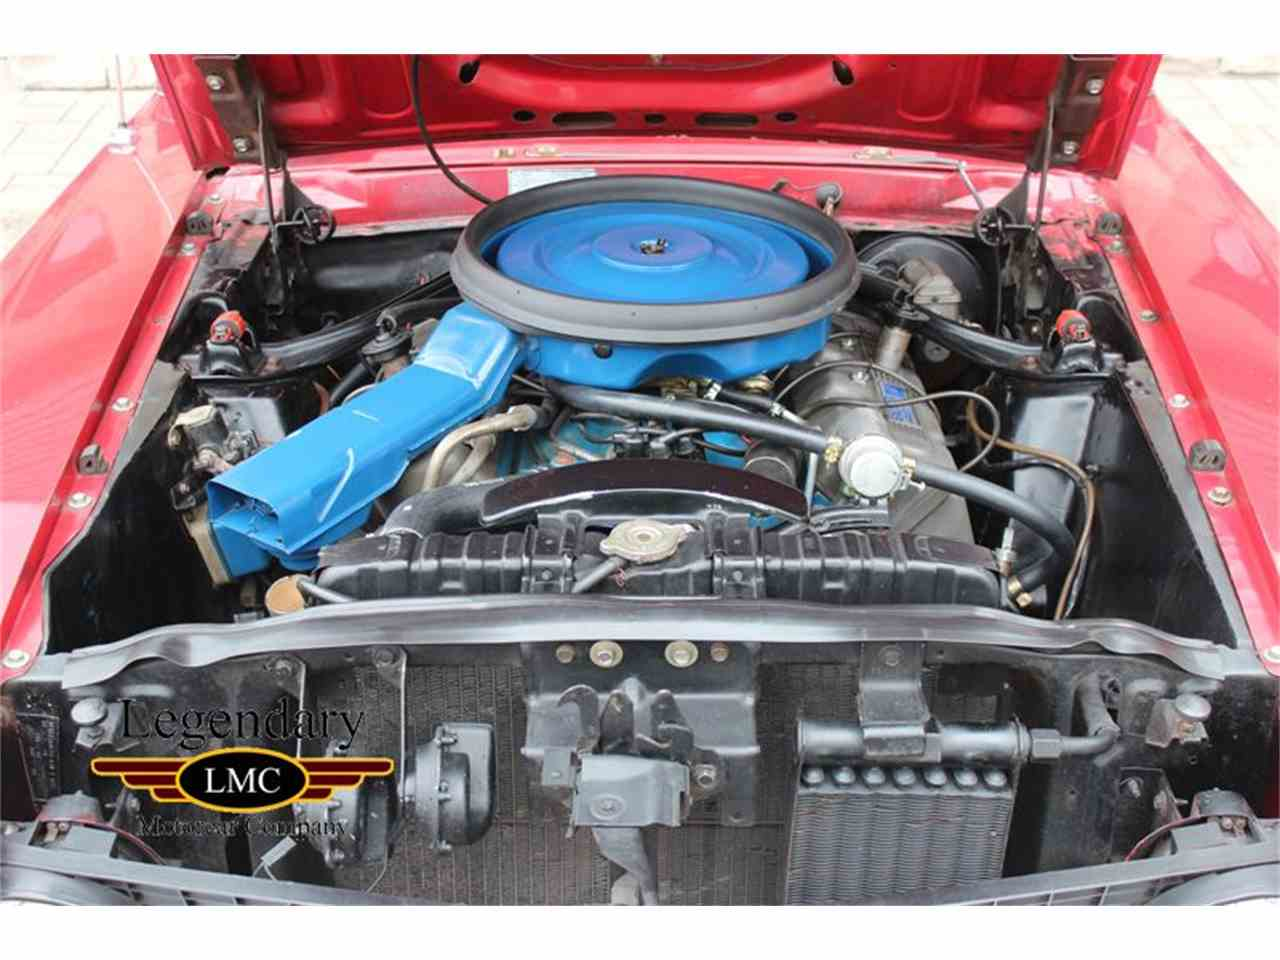 Large Picture of '69 Ford Mustang located in Ontario - $295,000.00 Offered by Legendary Motorcar Company - ISB1